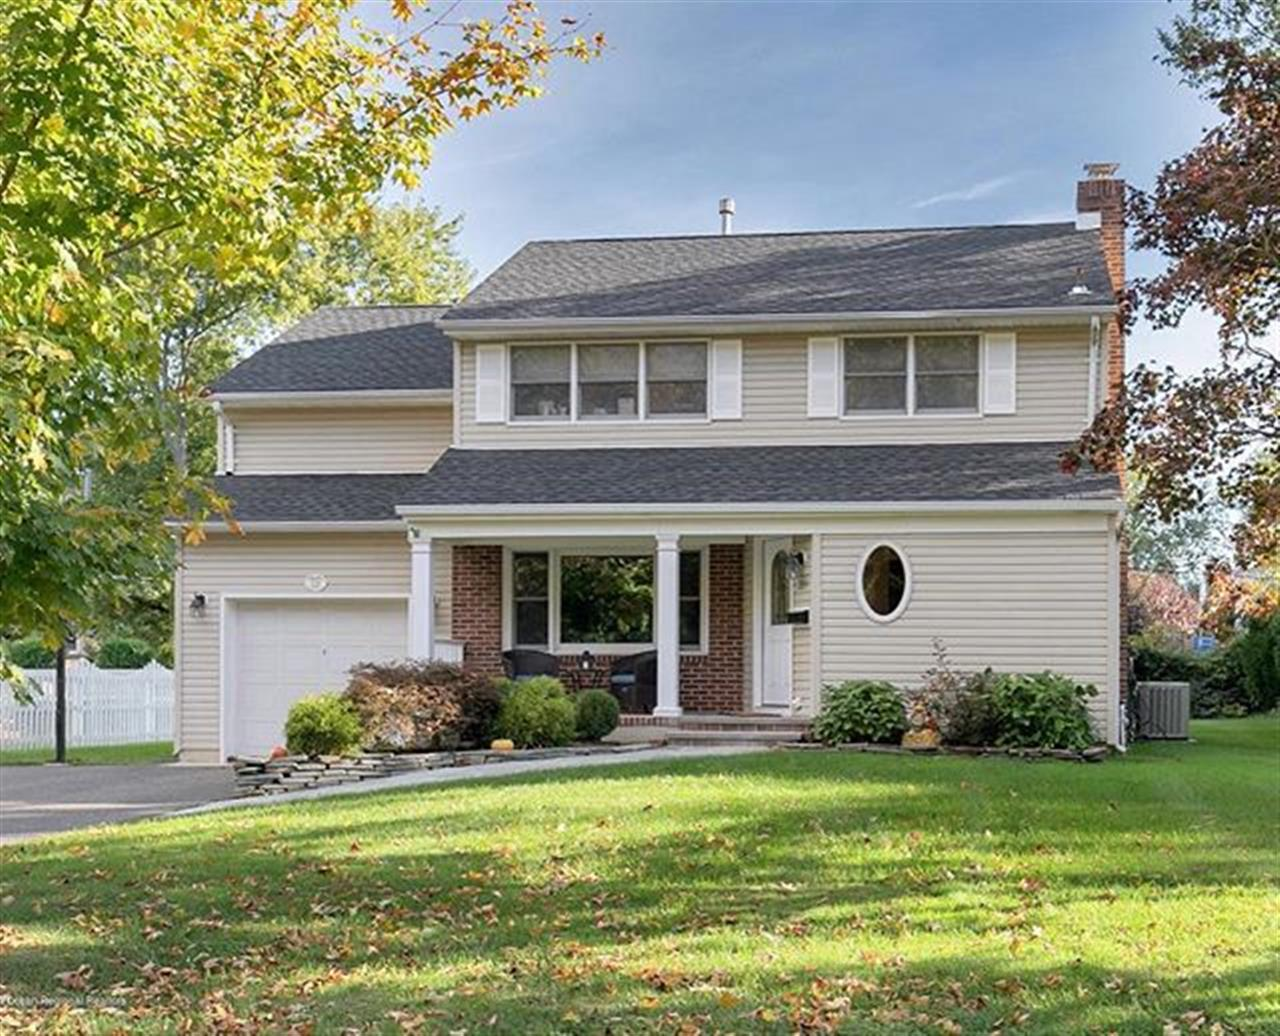 Stunning home on a sought after street in Fair Haven! . 209 Cambridge Avenue Fair Haven, NJ http://bit.ly/2lurPVo